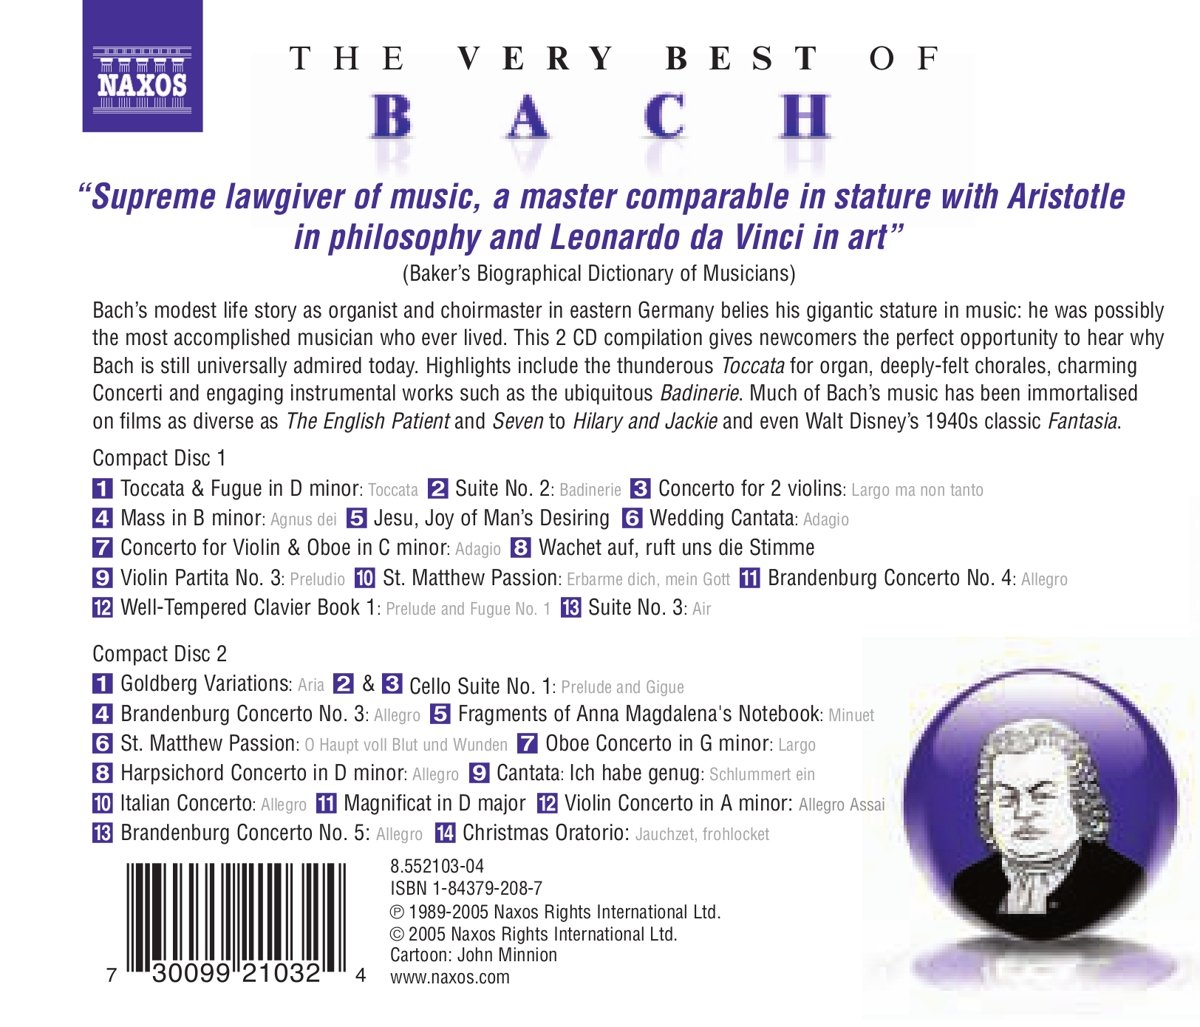 Very Best of Bach by Naxos